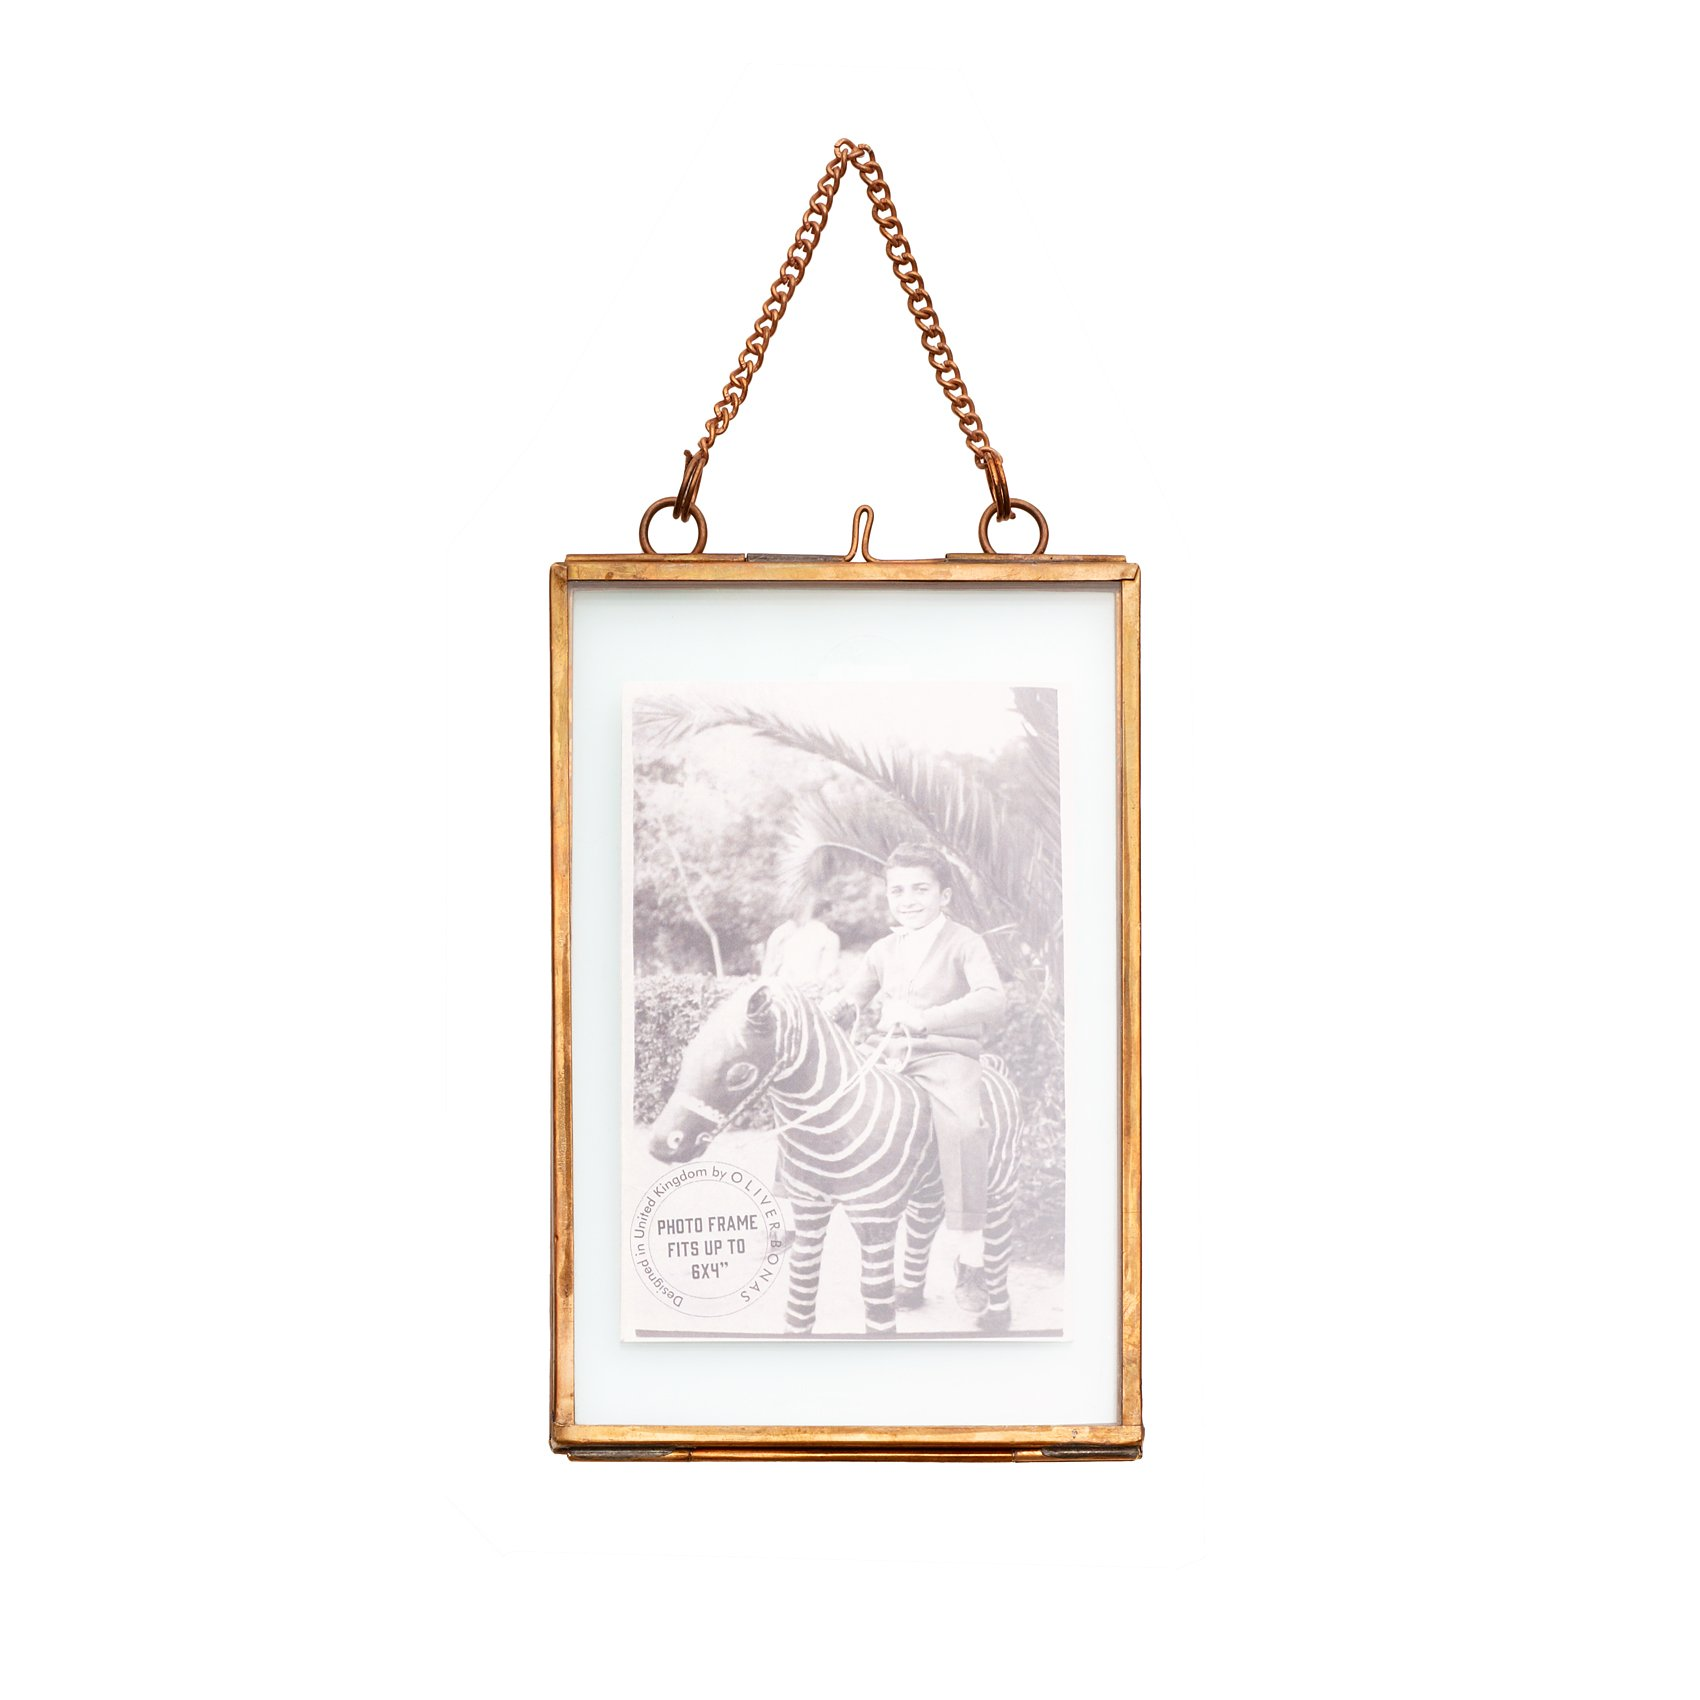 copper and glass hanging frame oliver bonas